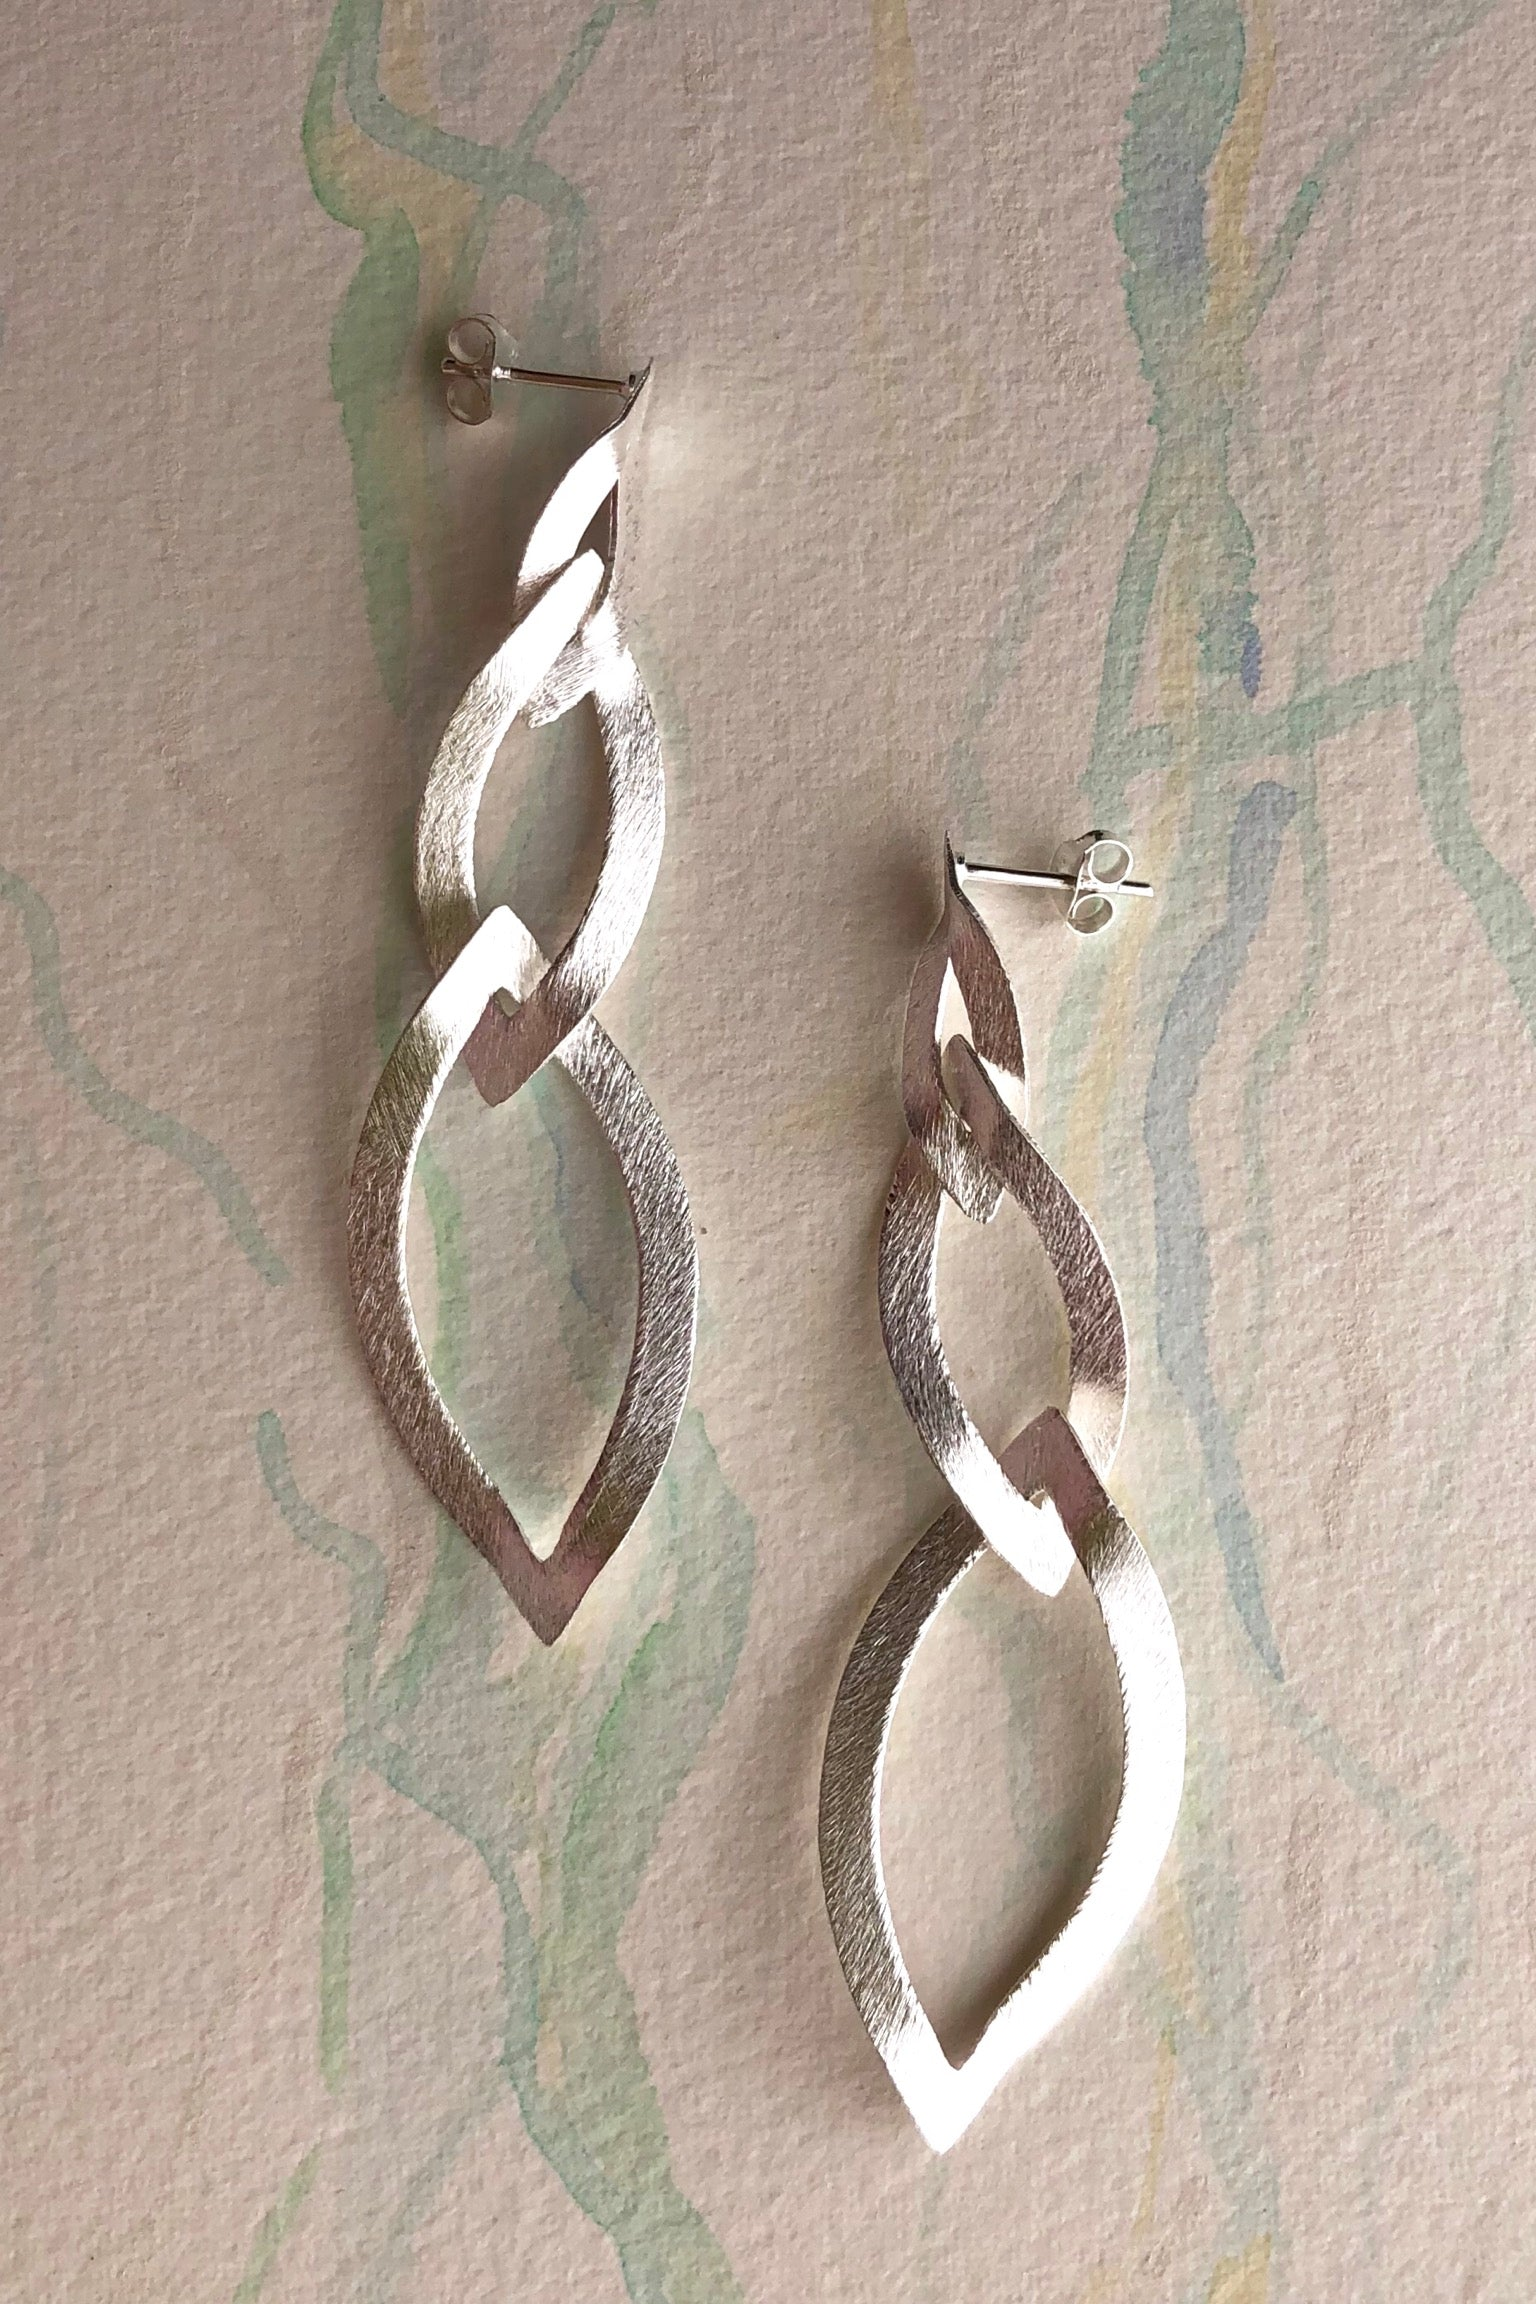 Earrings Sala Triplet in Laser Finish 925 Silver Silver drop earrings, simple delicate and dainty.